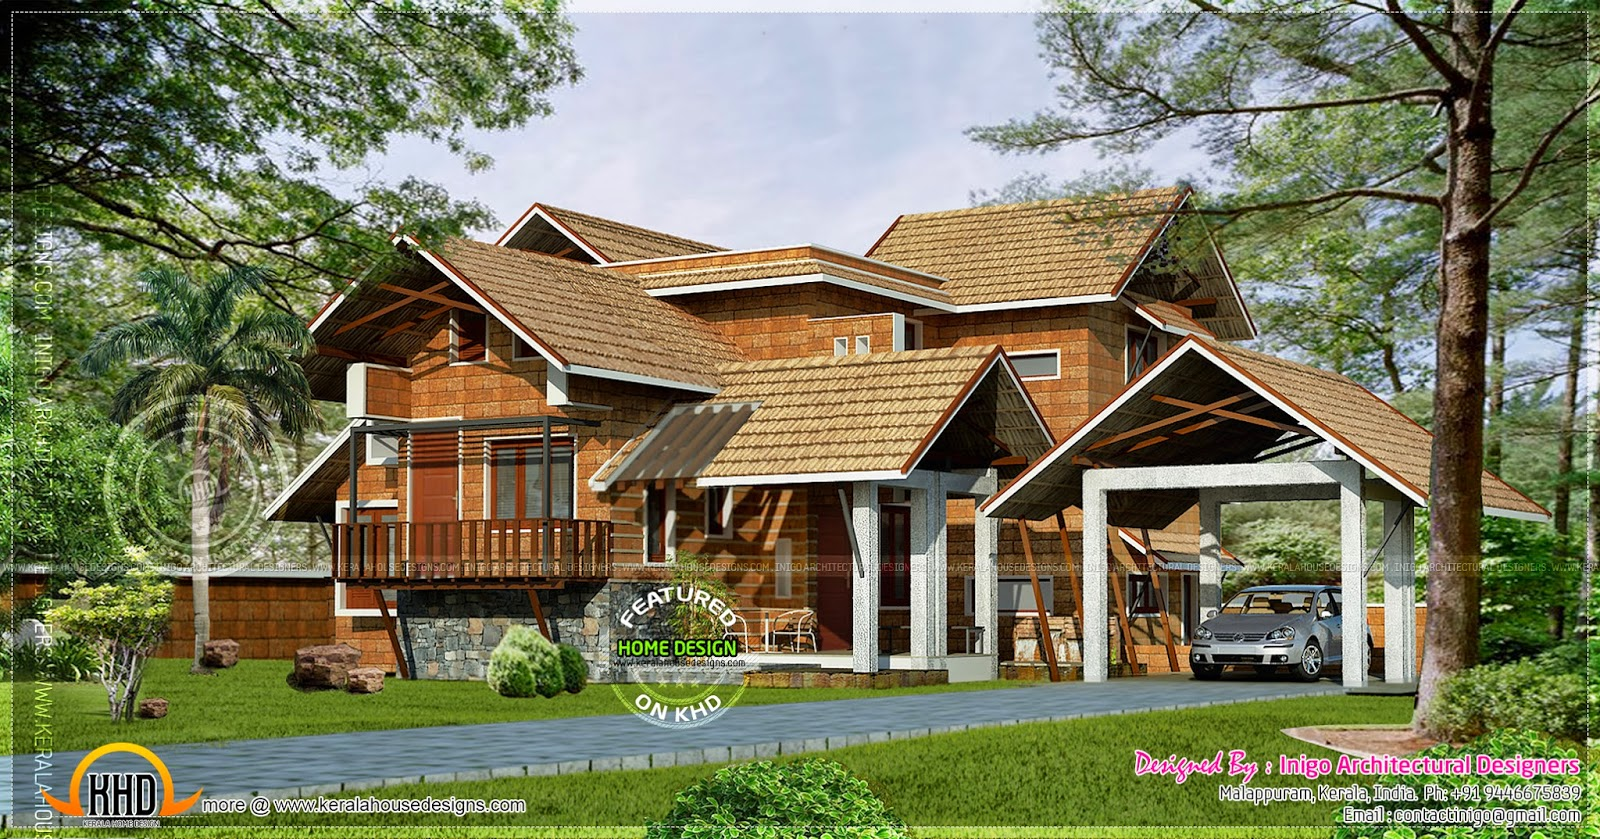 Kerala traditional laterite house kerala home design and for Kerala house plans and designs